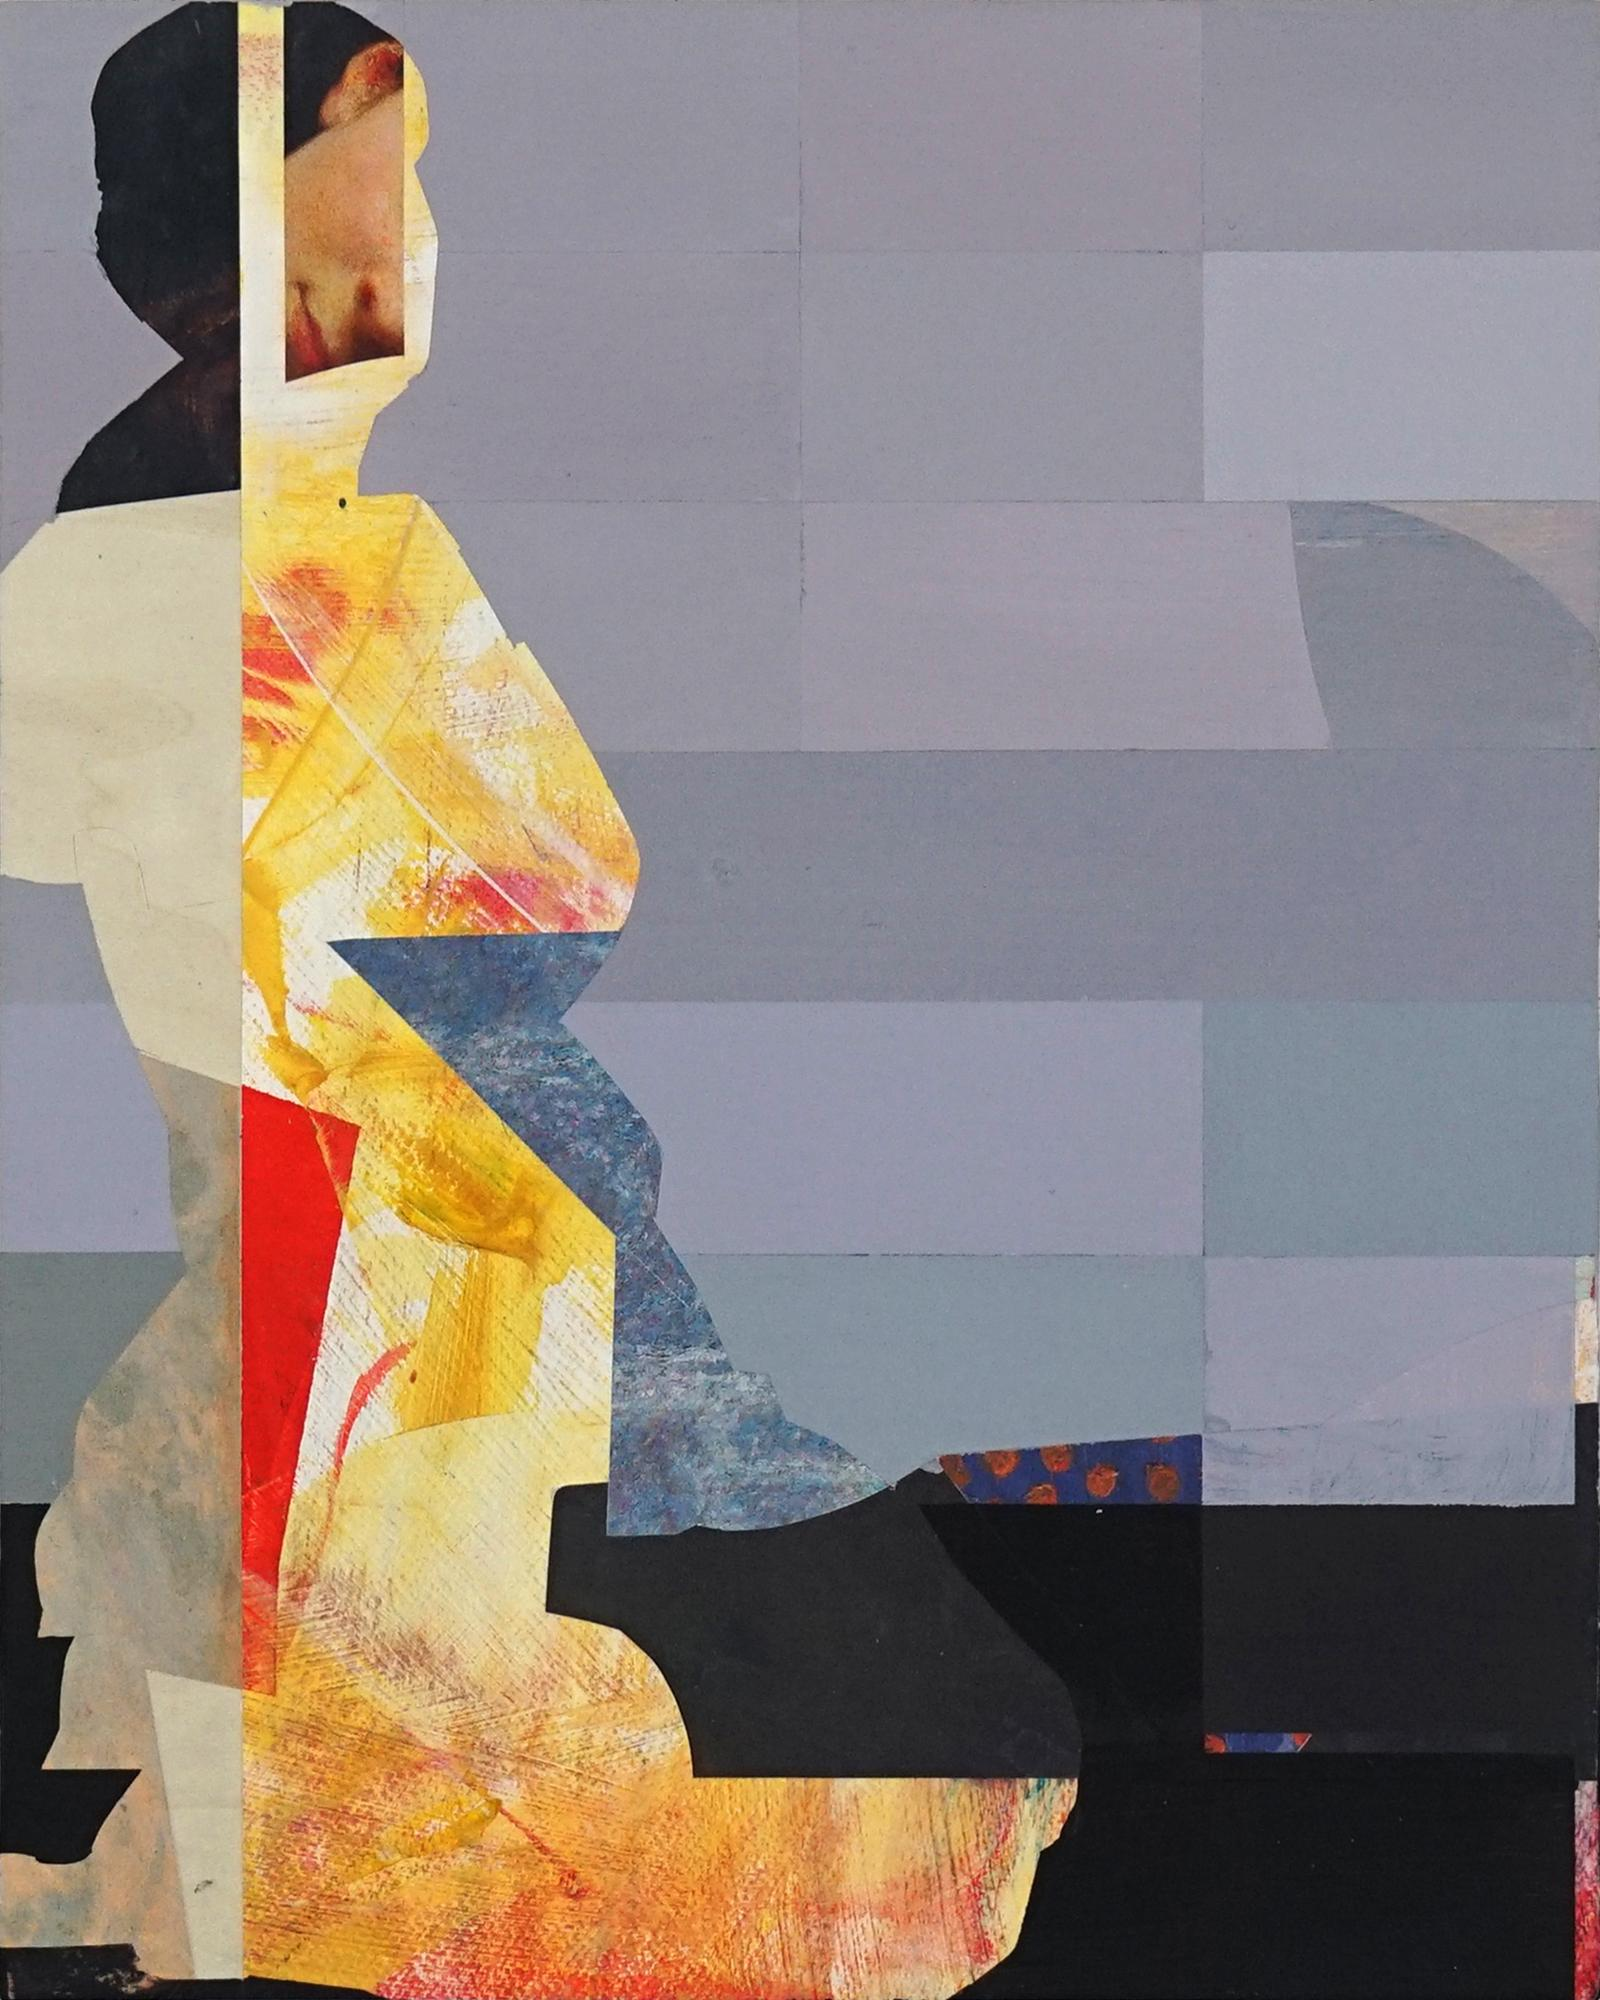 Pixel Study 2 - yellow gray abstract figurative painting and photo of a women